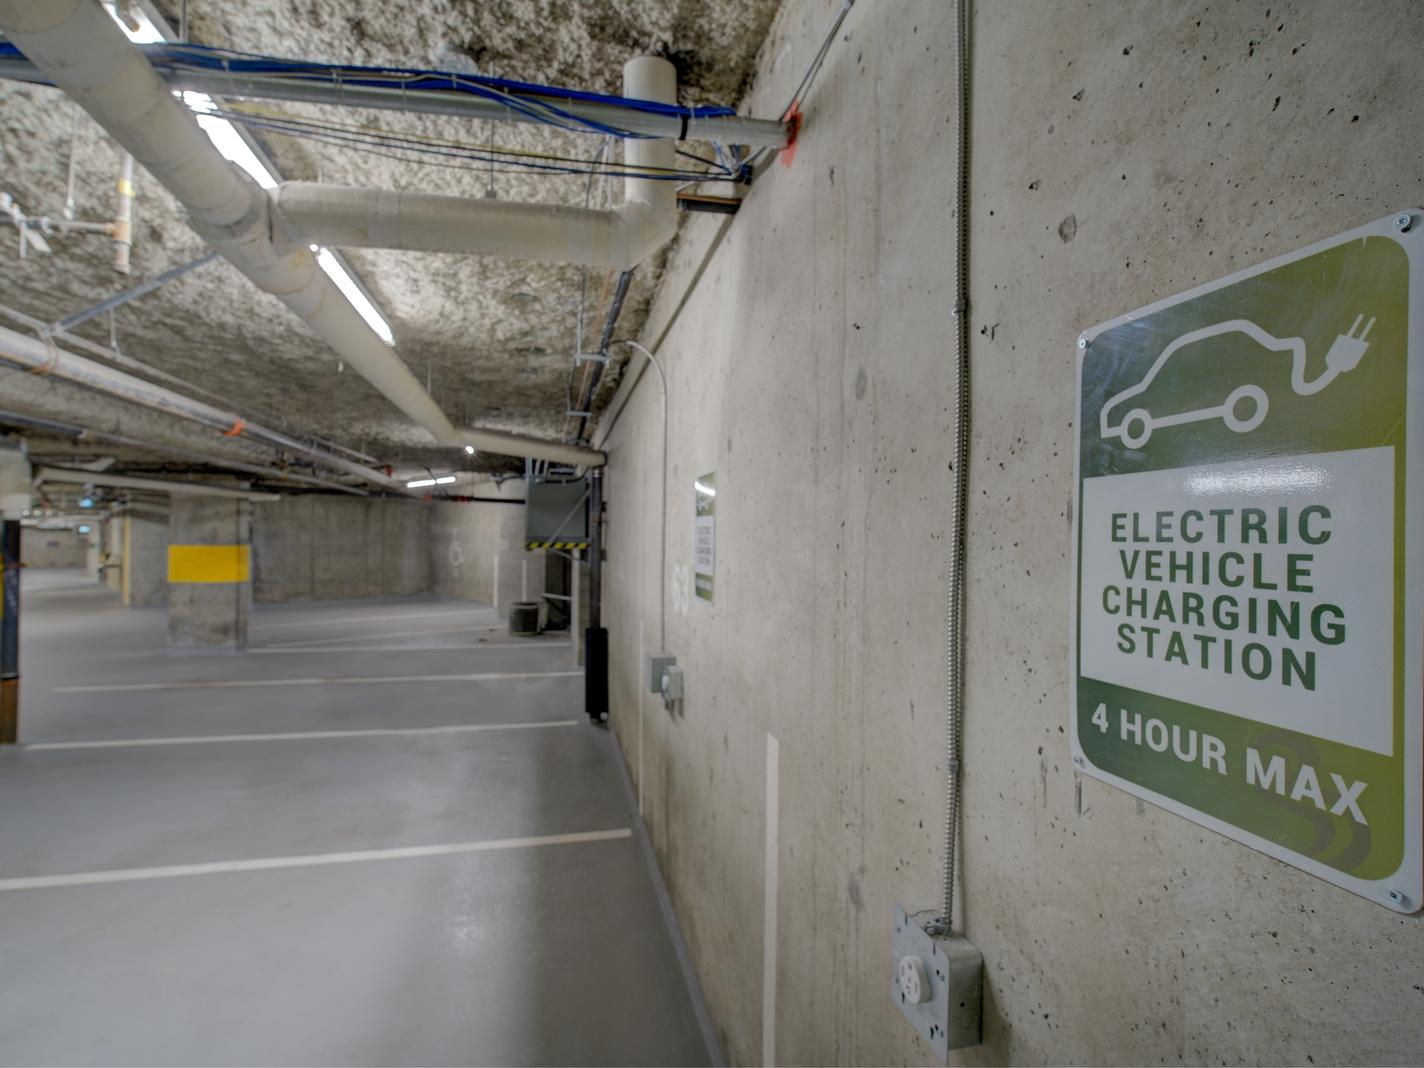 parking with sign for electric vehicles charging station